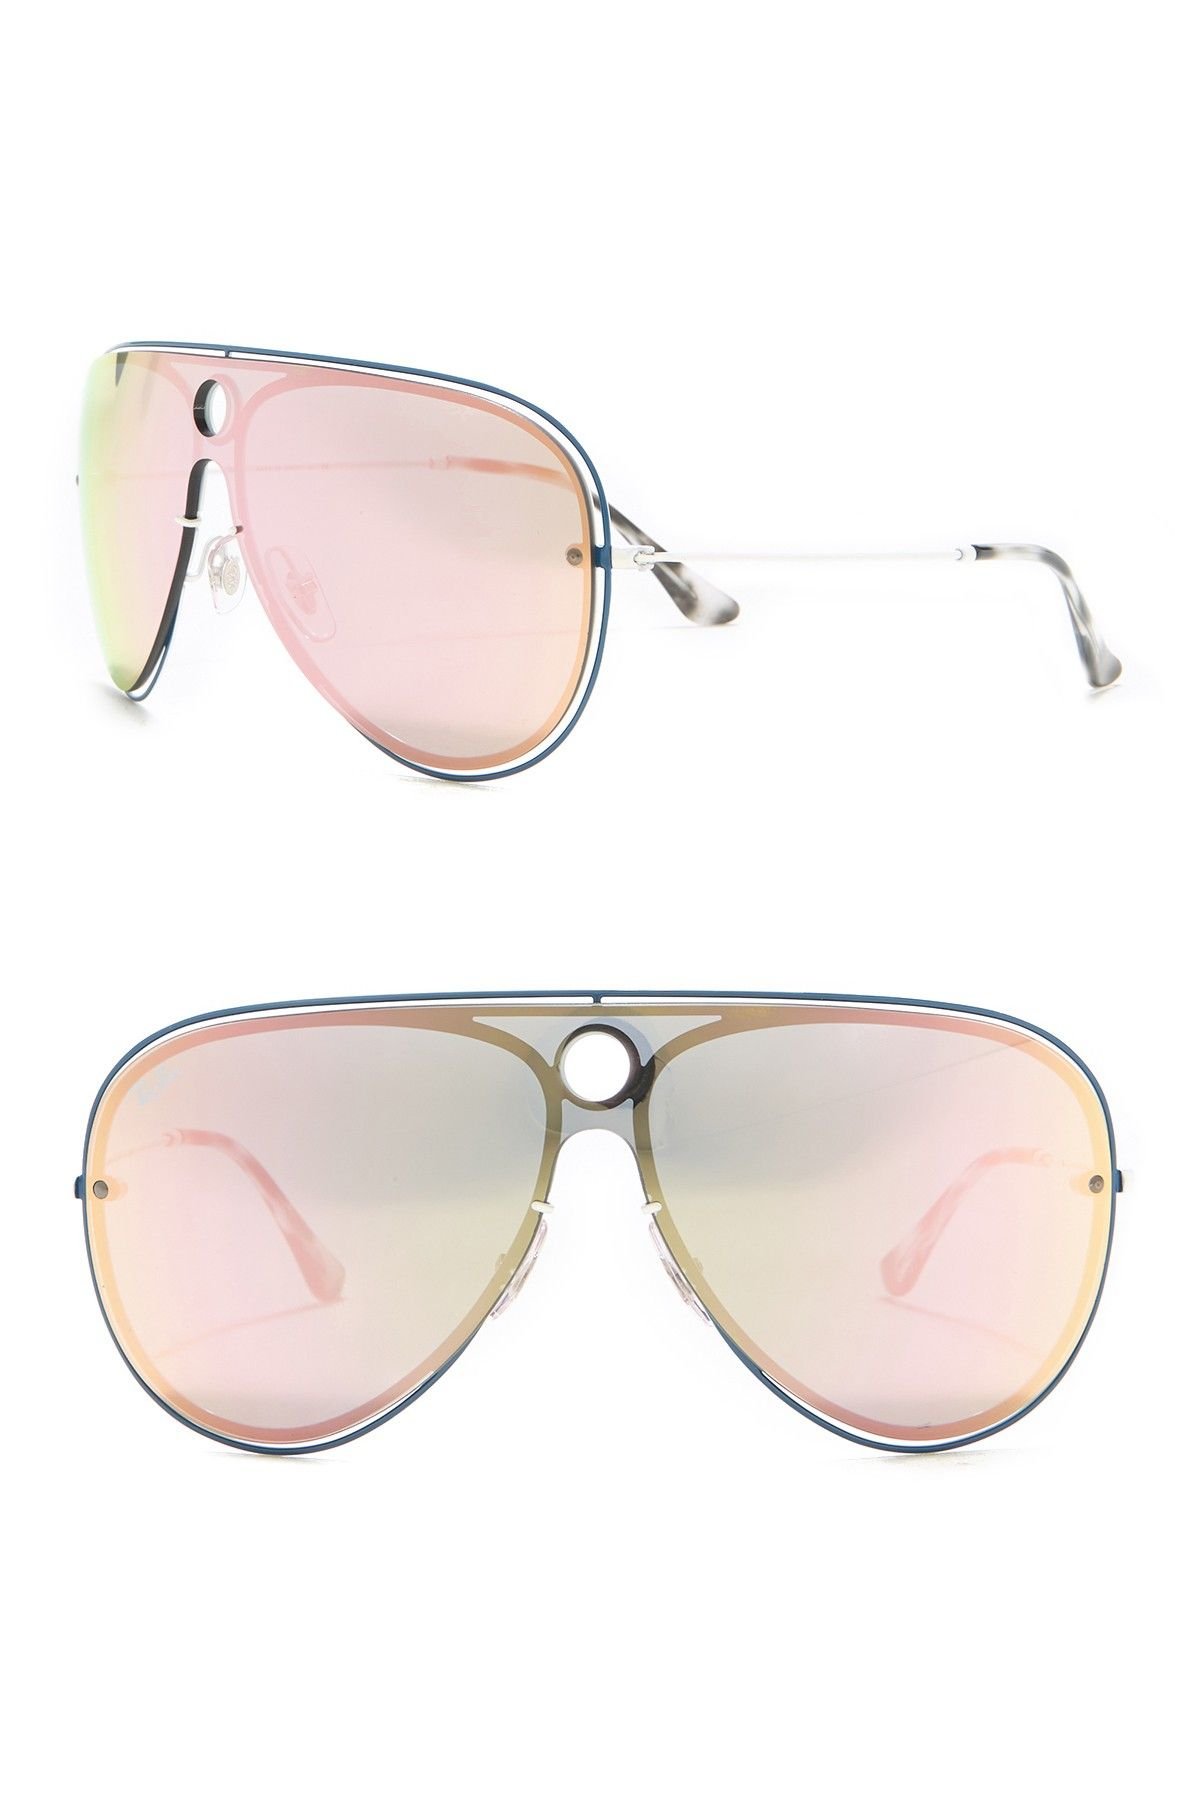 Ray-Ban | 145mm Shield Sunglasses #nordstromrack